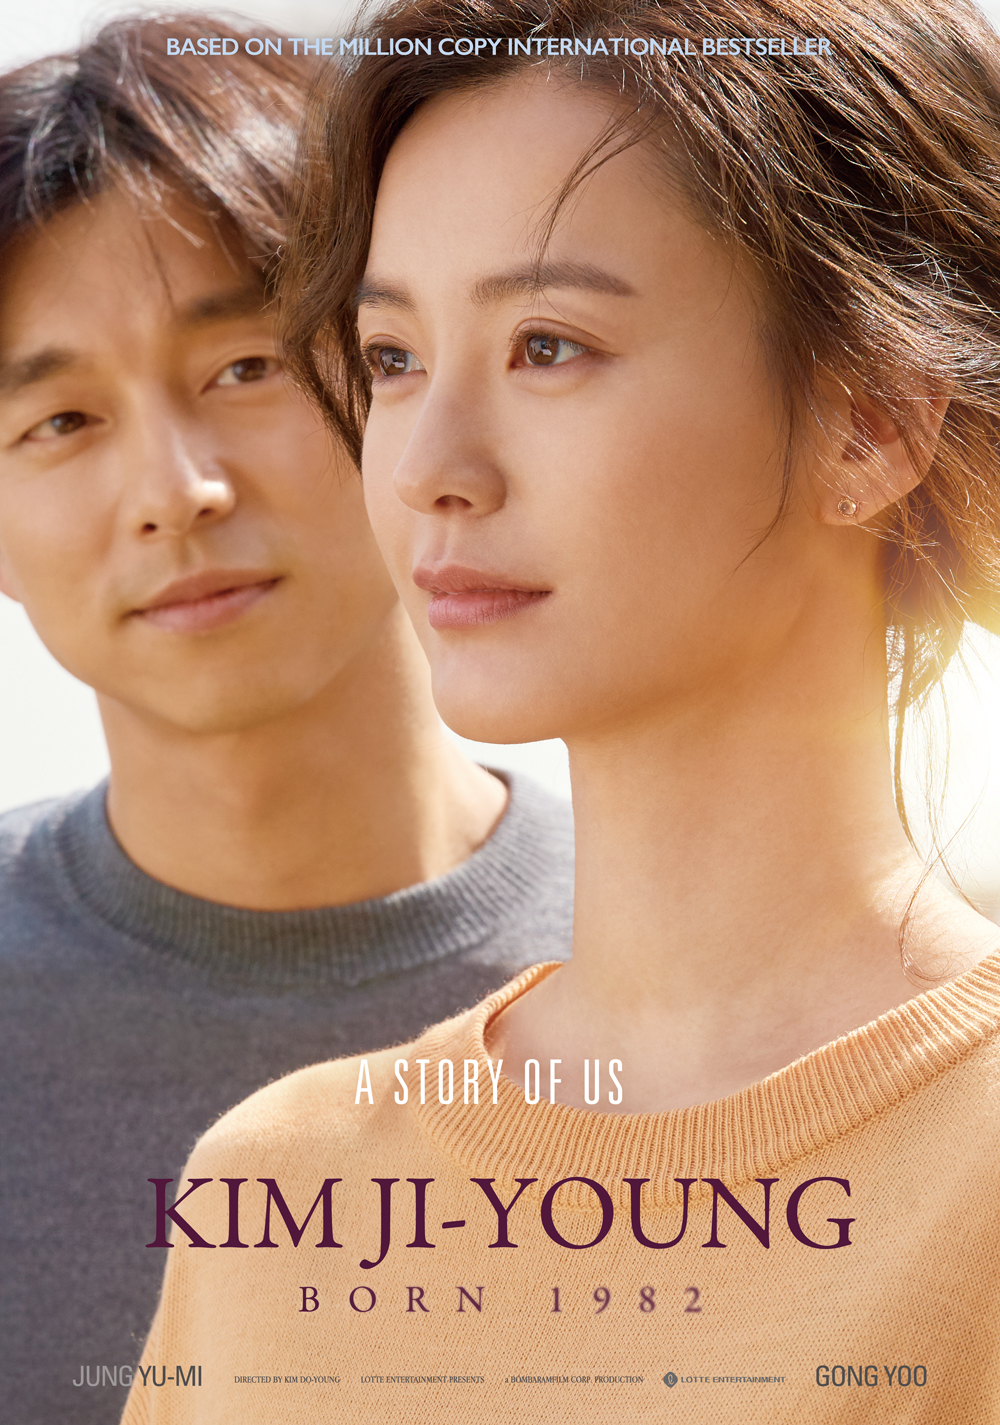 KIM JI-YOUNG, BORN 1982 movie scene thumbnail 45